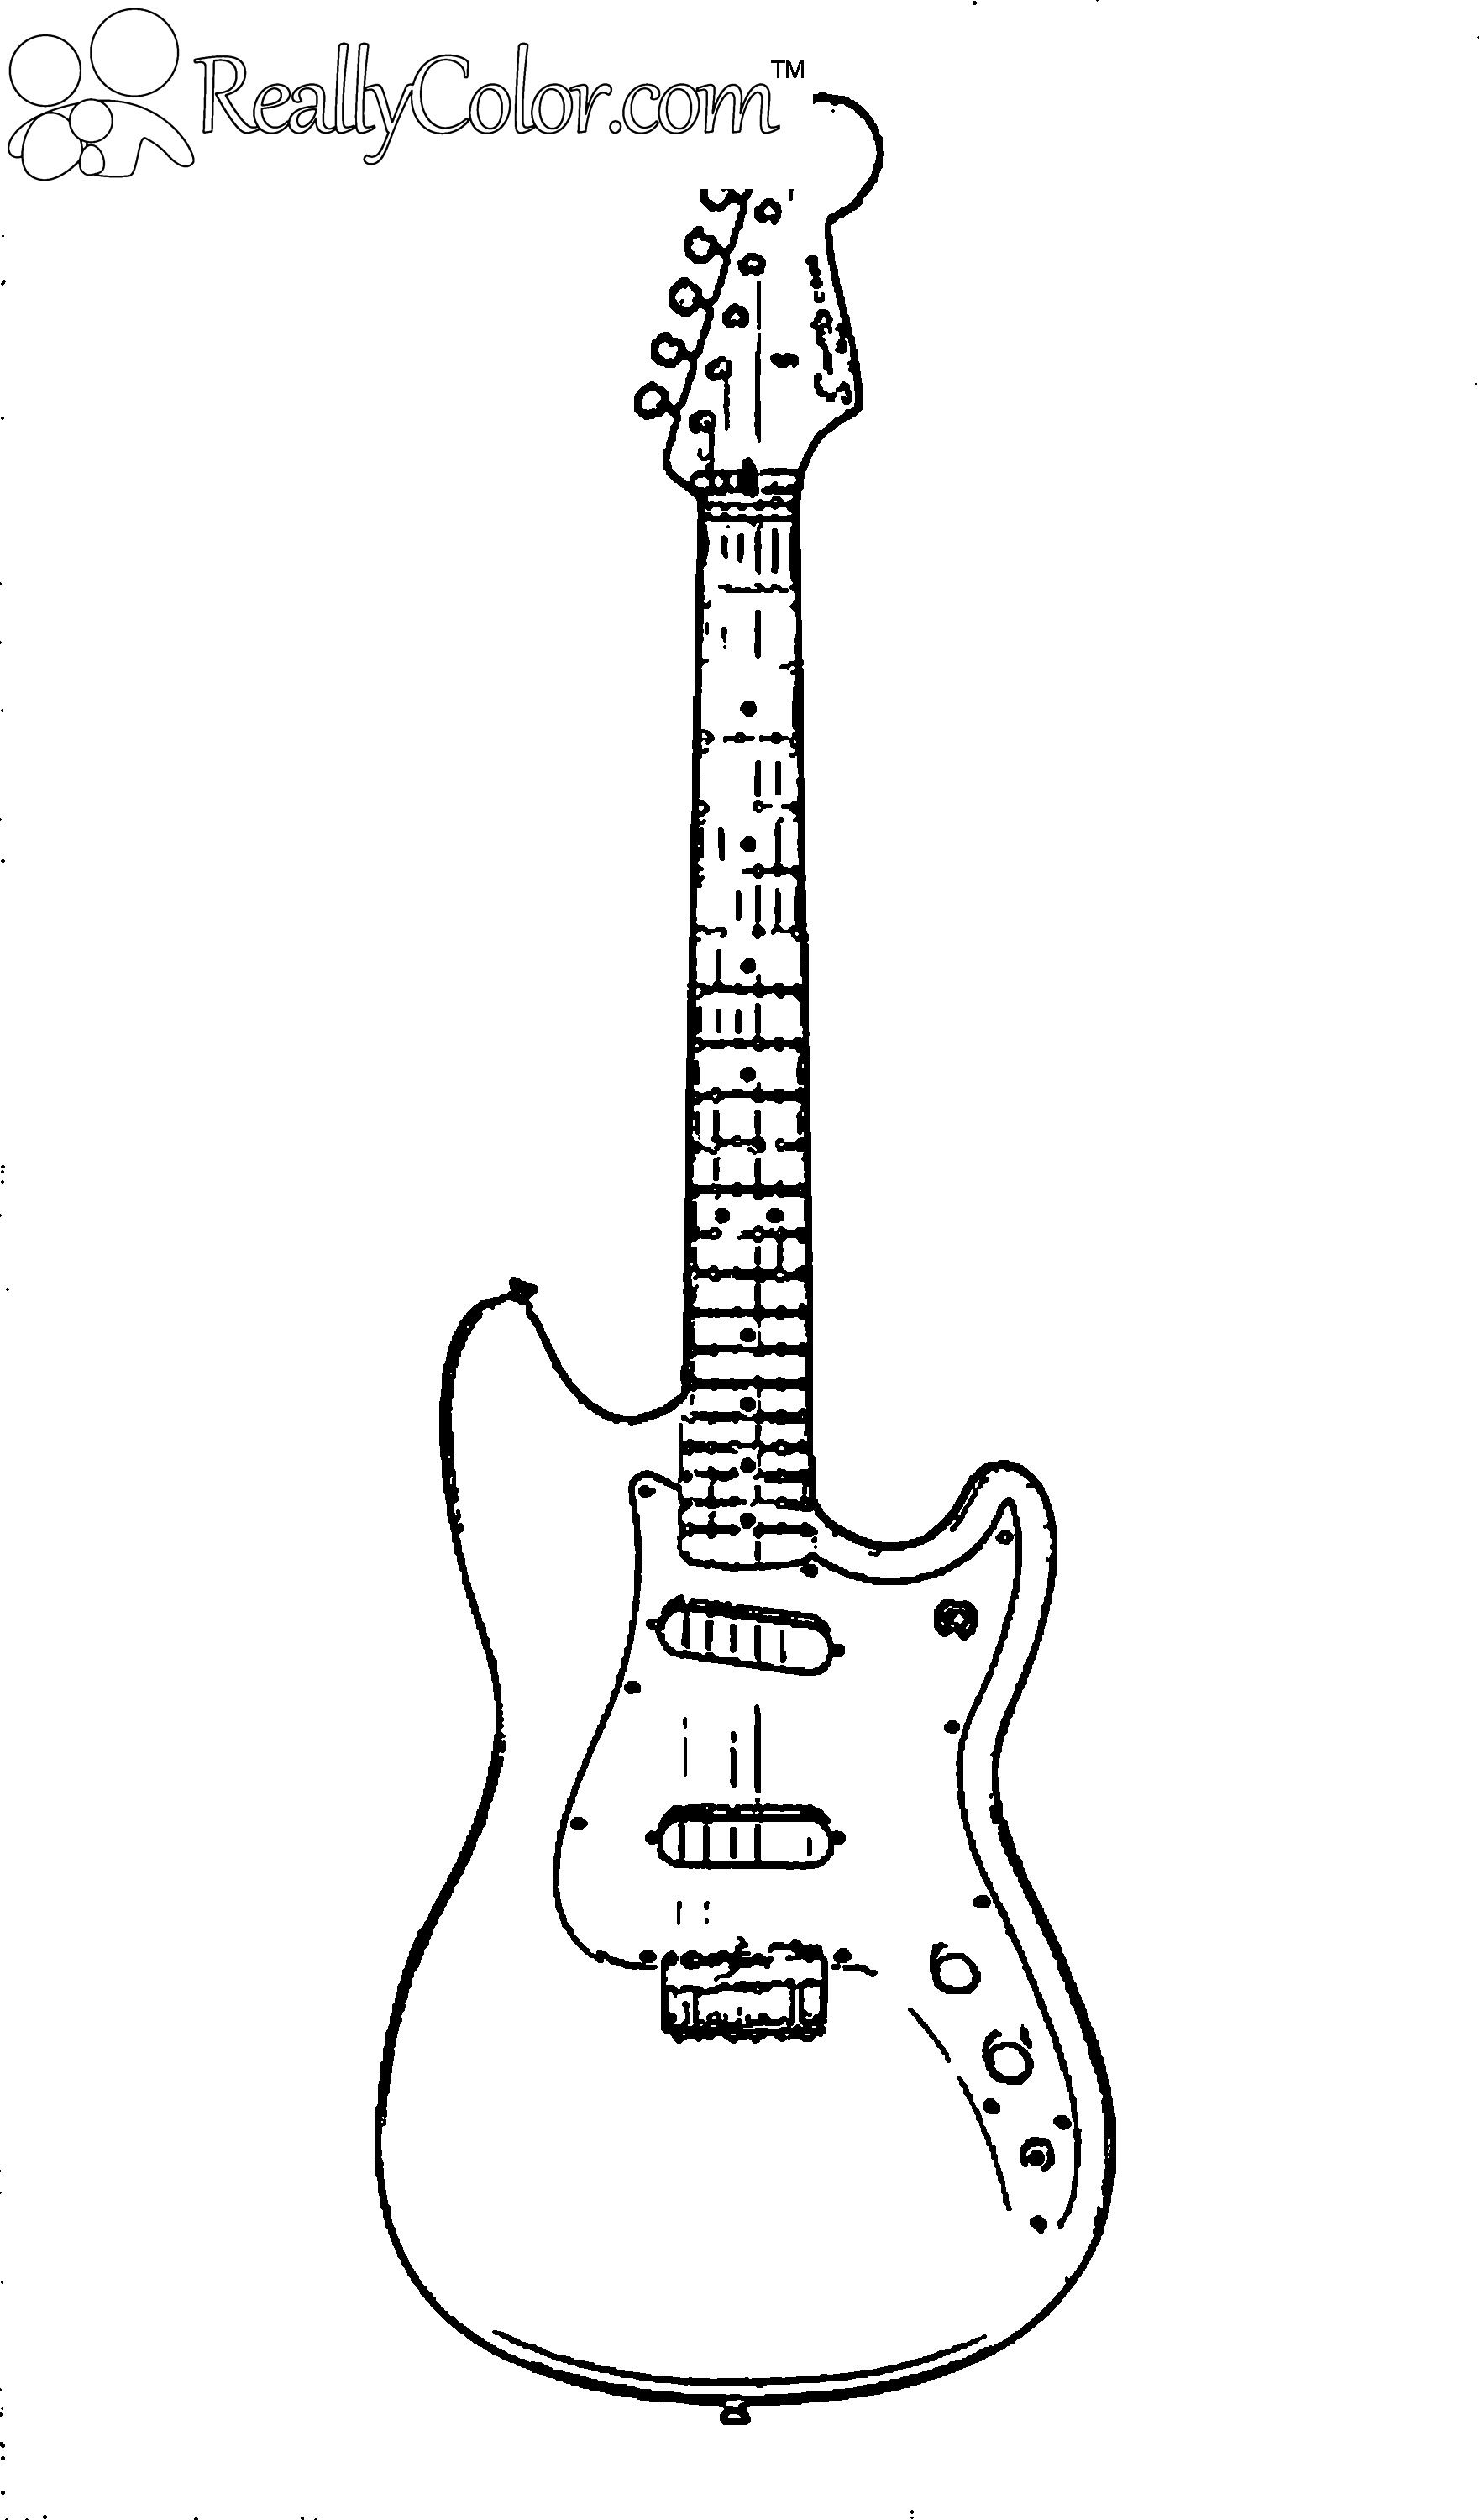 printable coloring pages guitar - photo#11